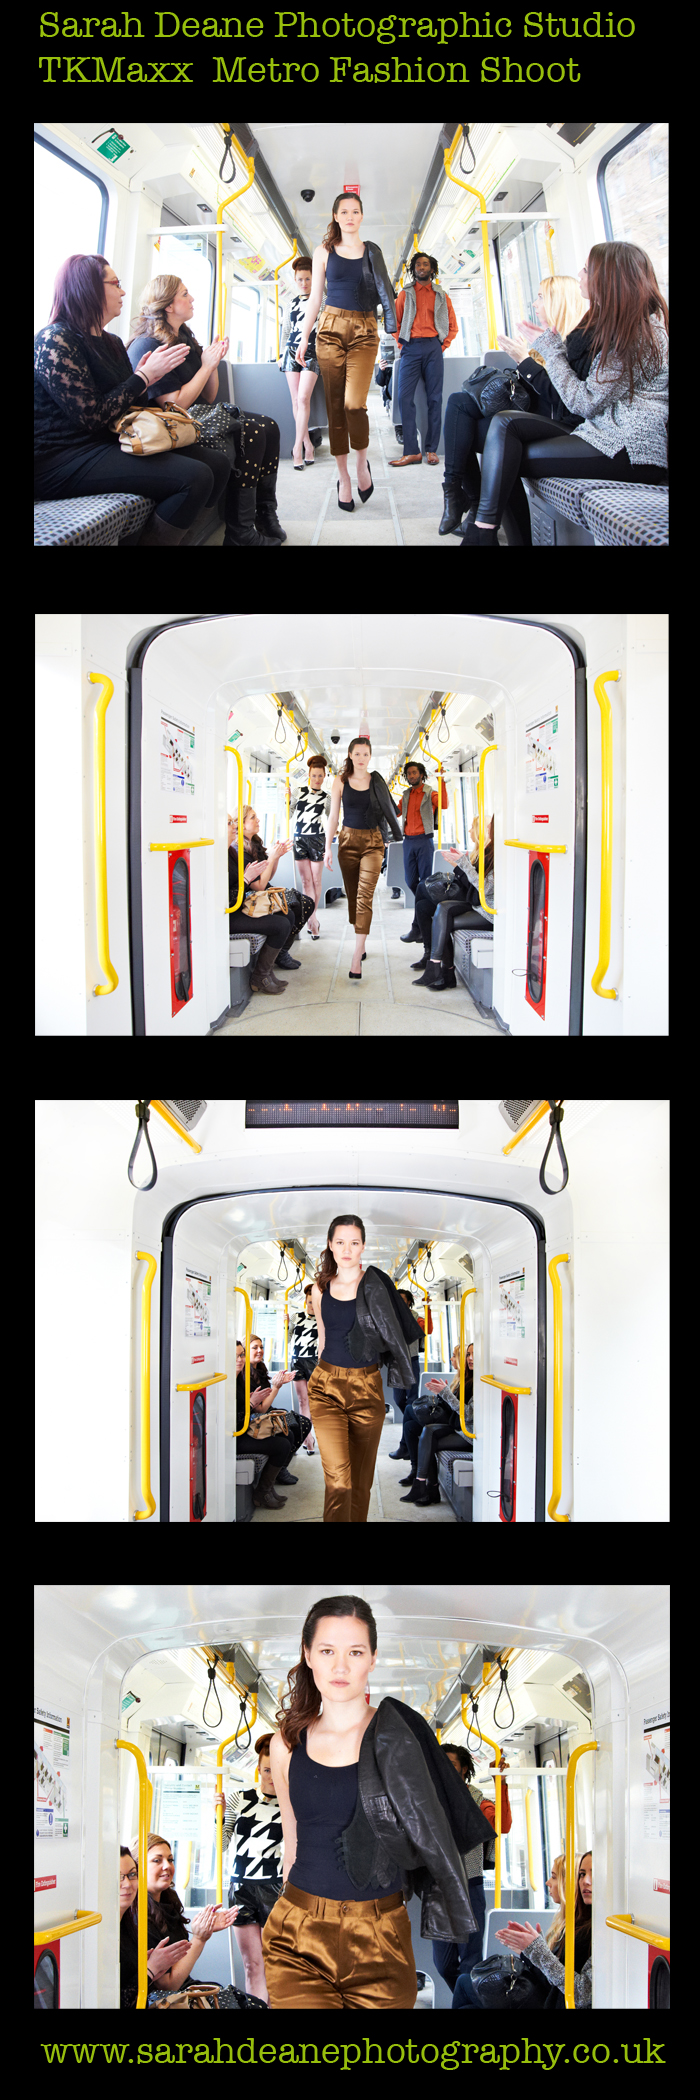 TKMaxx shoot for McCann Manchester on moving metro train carriage in newcastle for PR for opening of new store